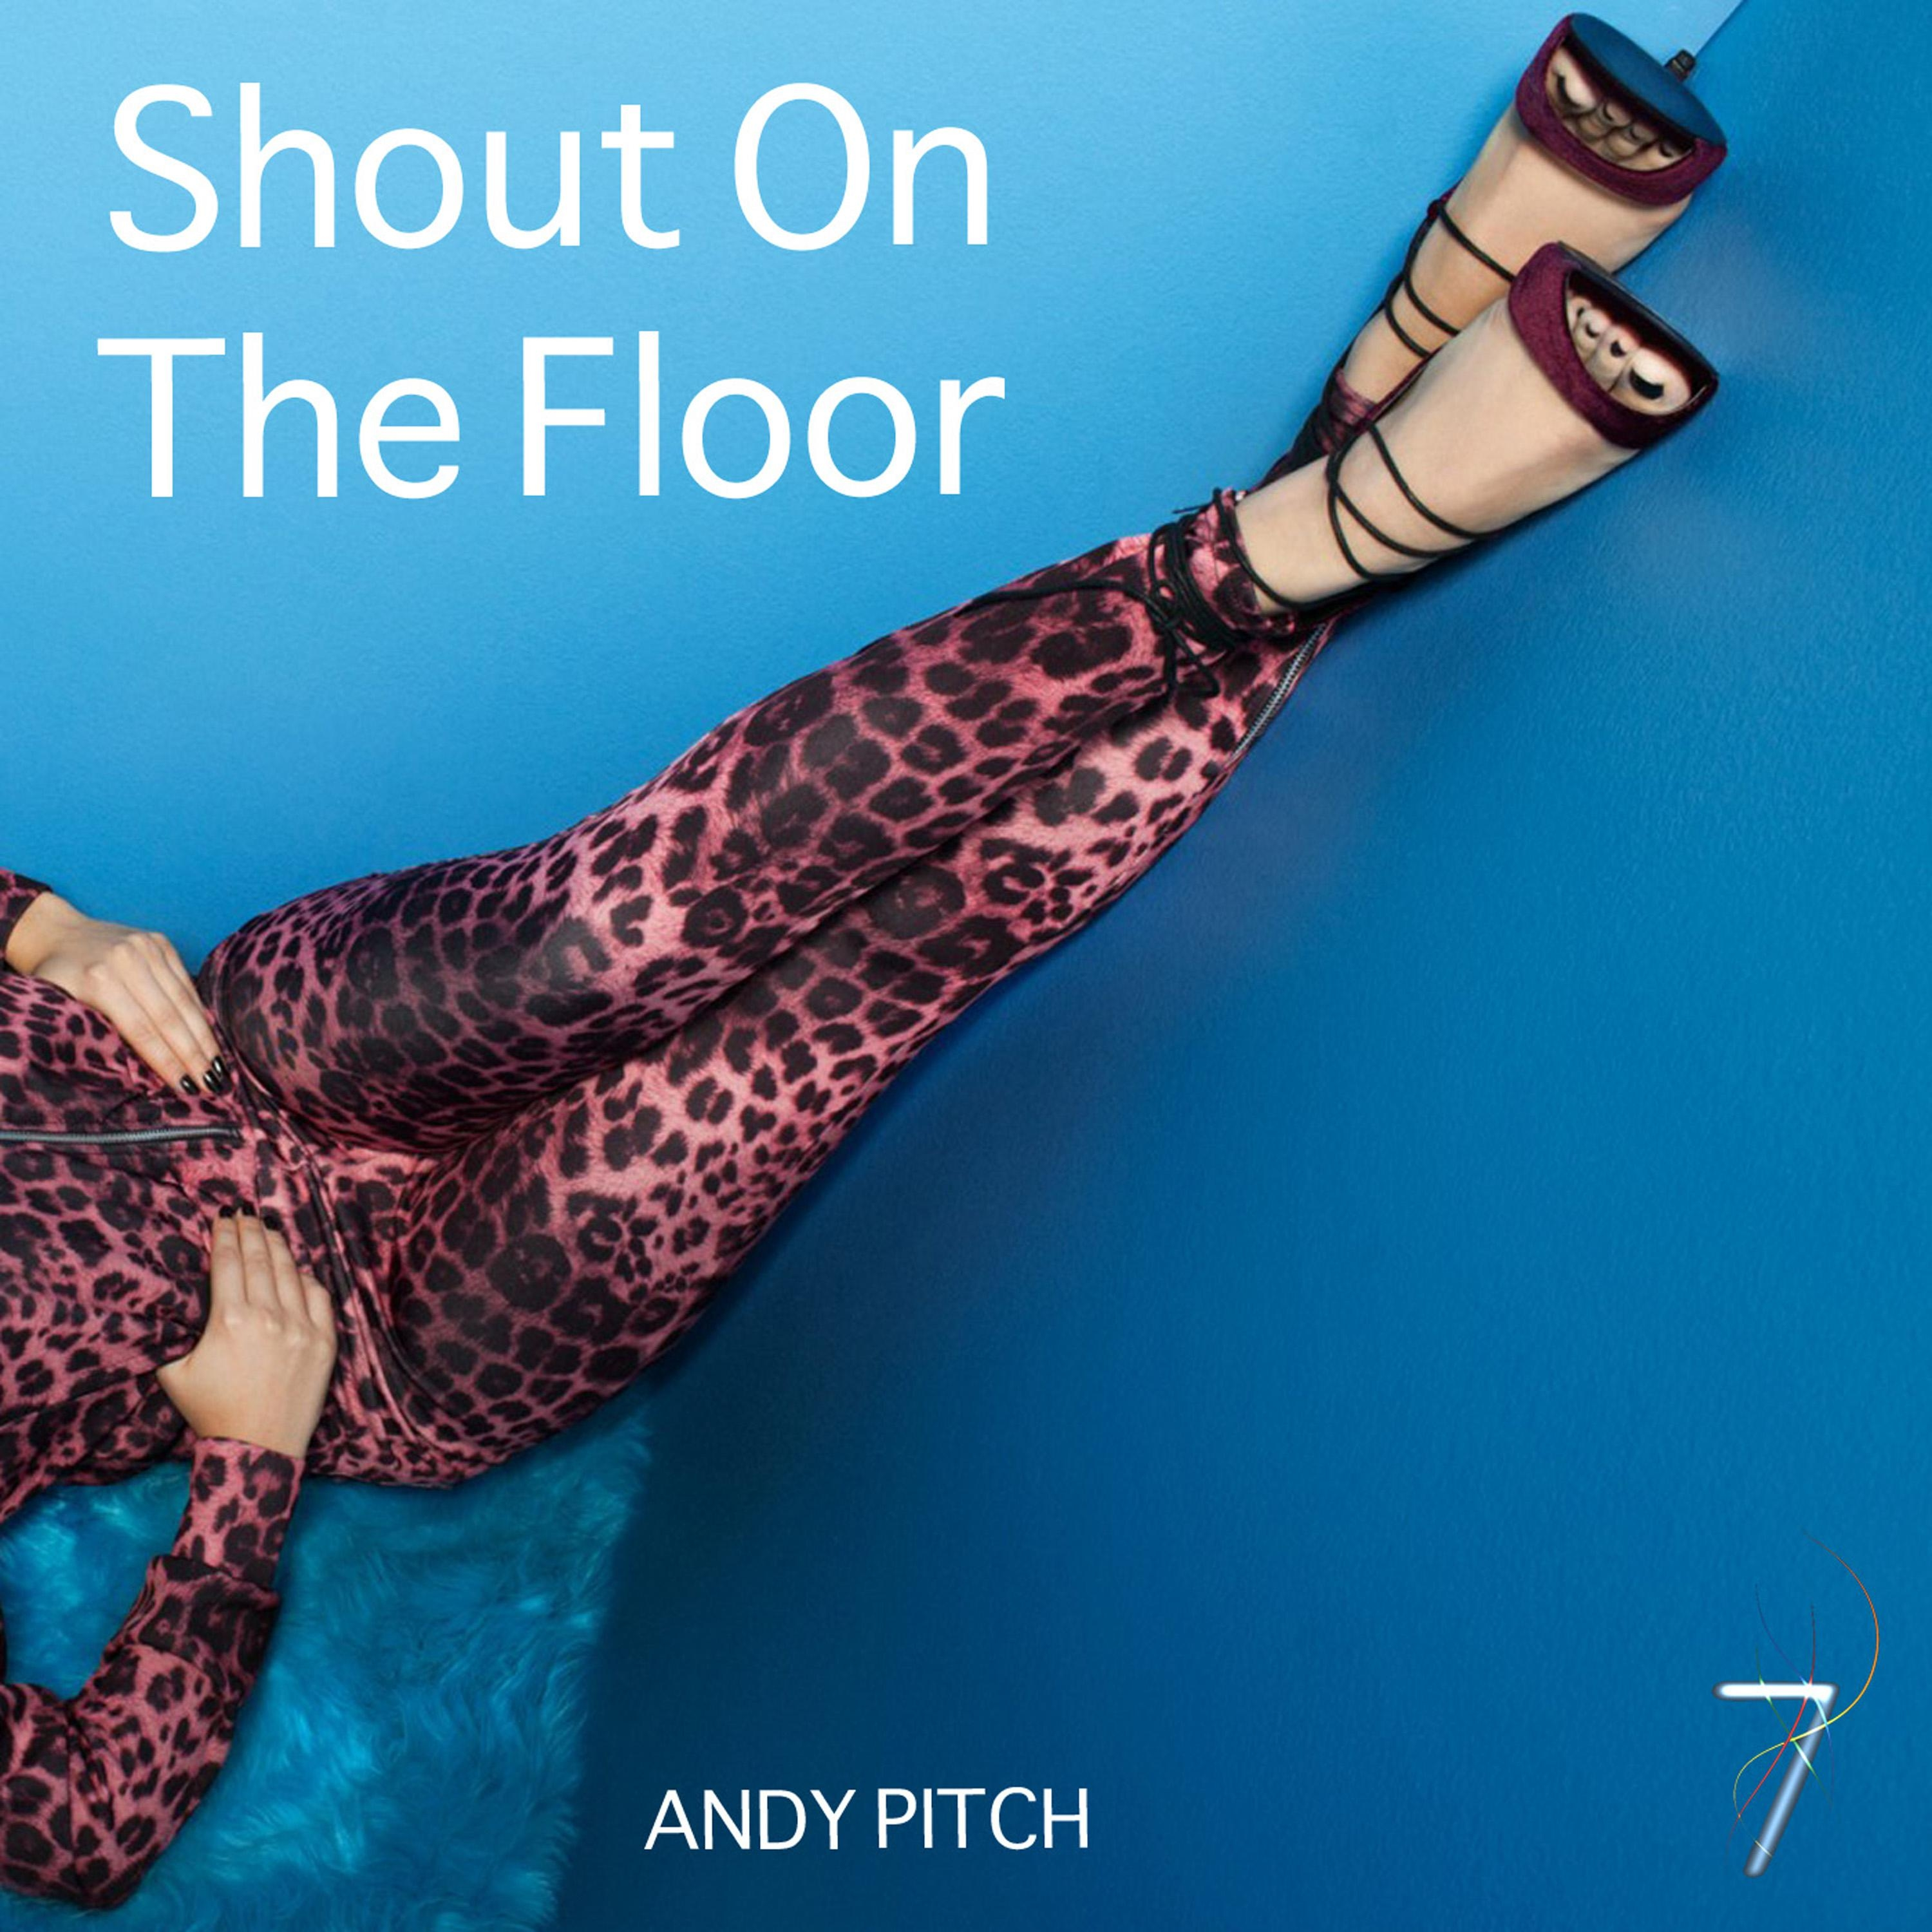 Andy Pitch - Shout On The Floor (Original mix)